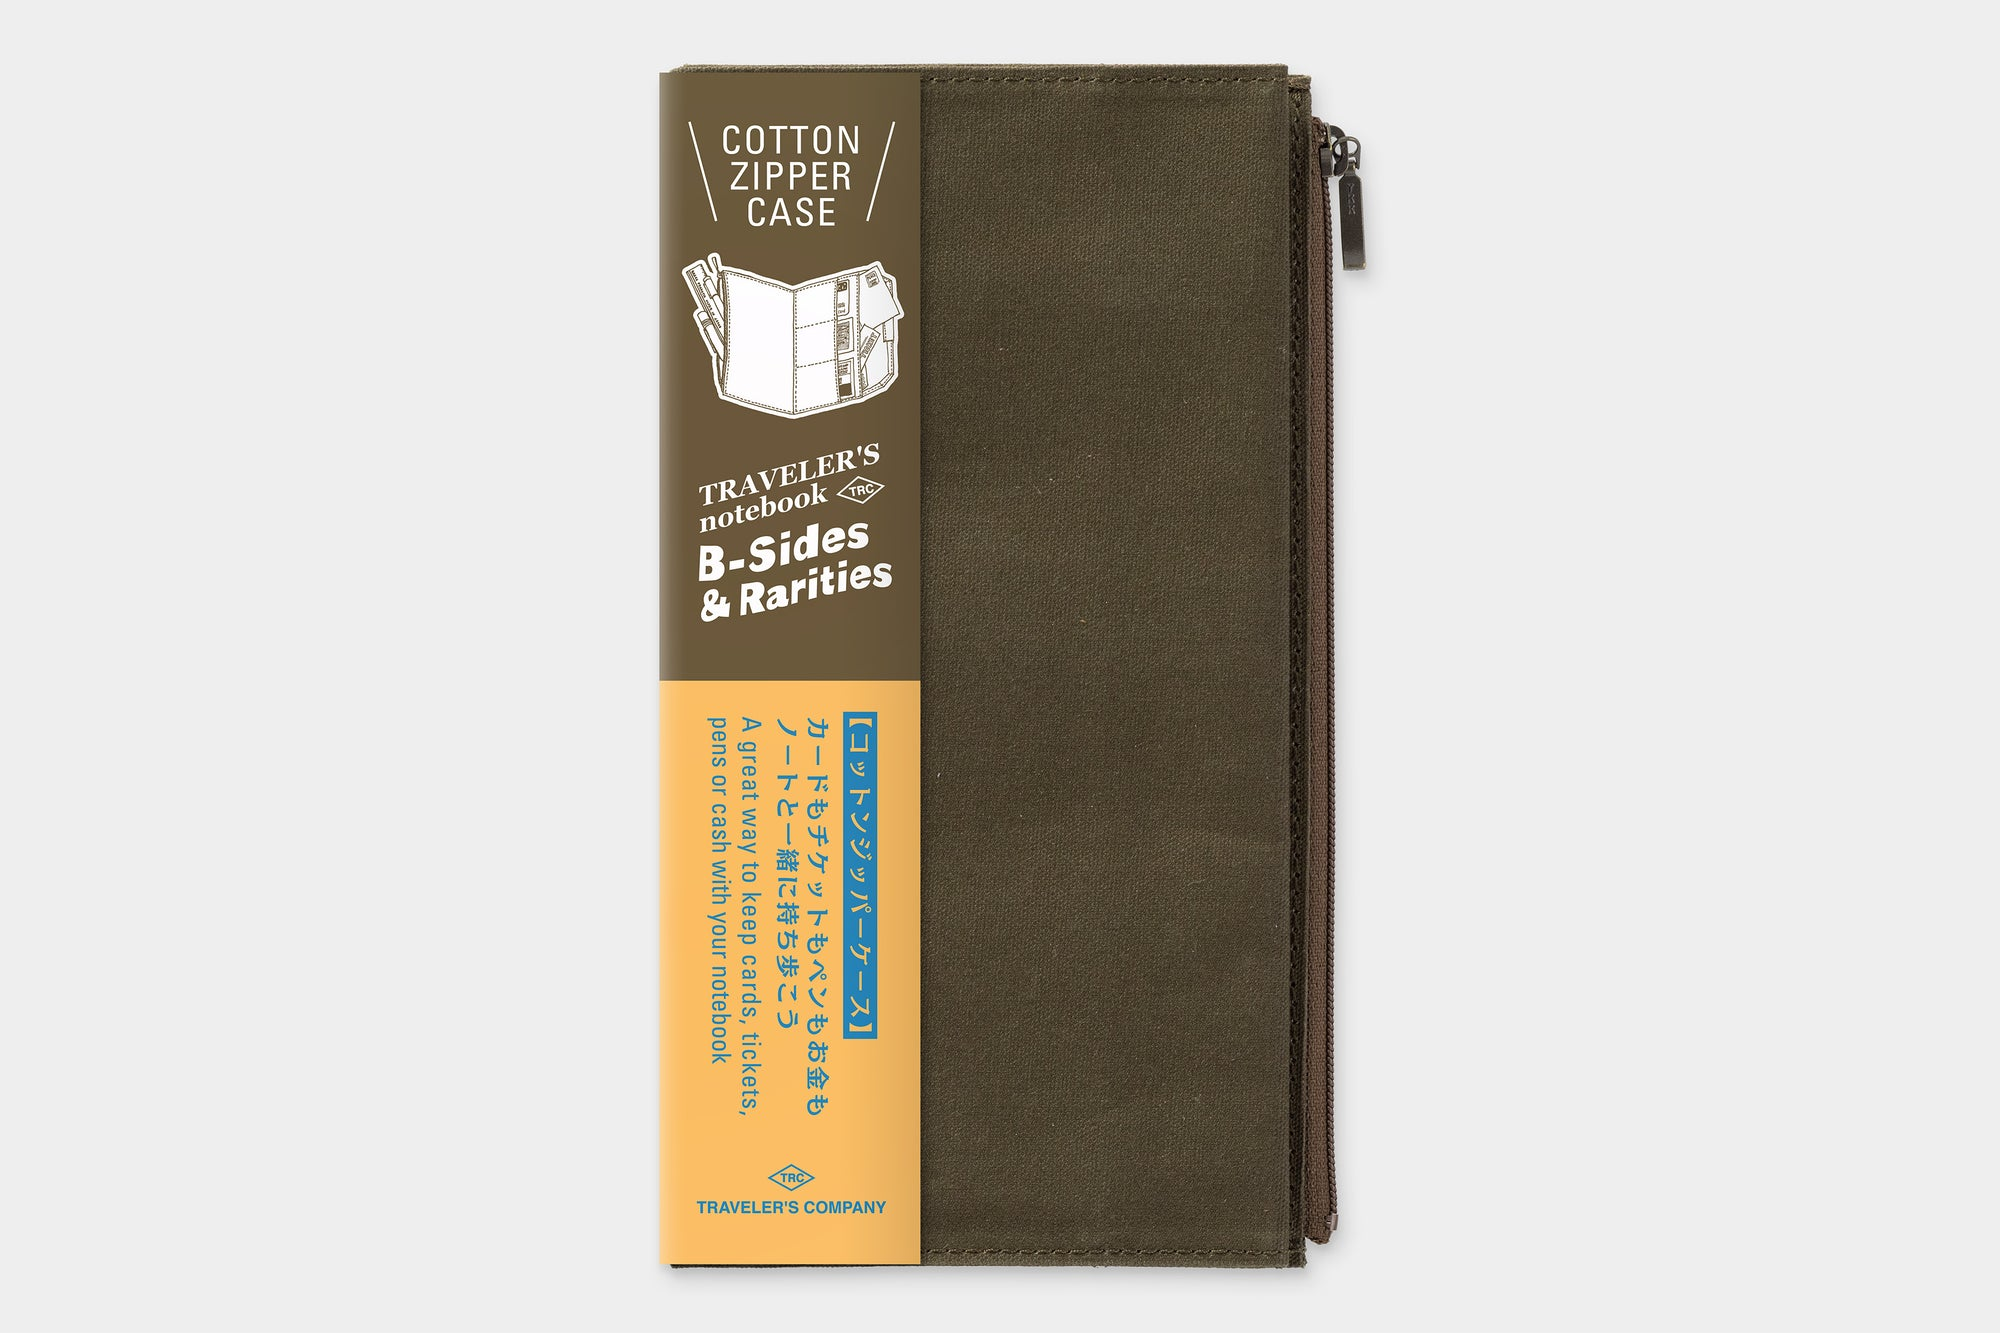 TRAVELER'S LTD Edition - TRAVELER'S notebook Cotton Zipper Case Olive